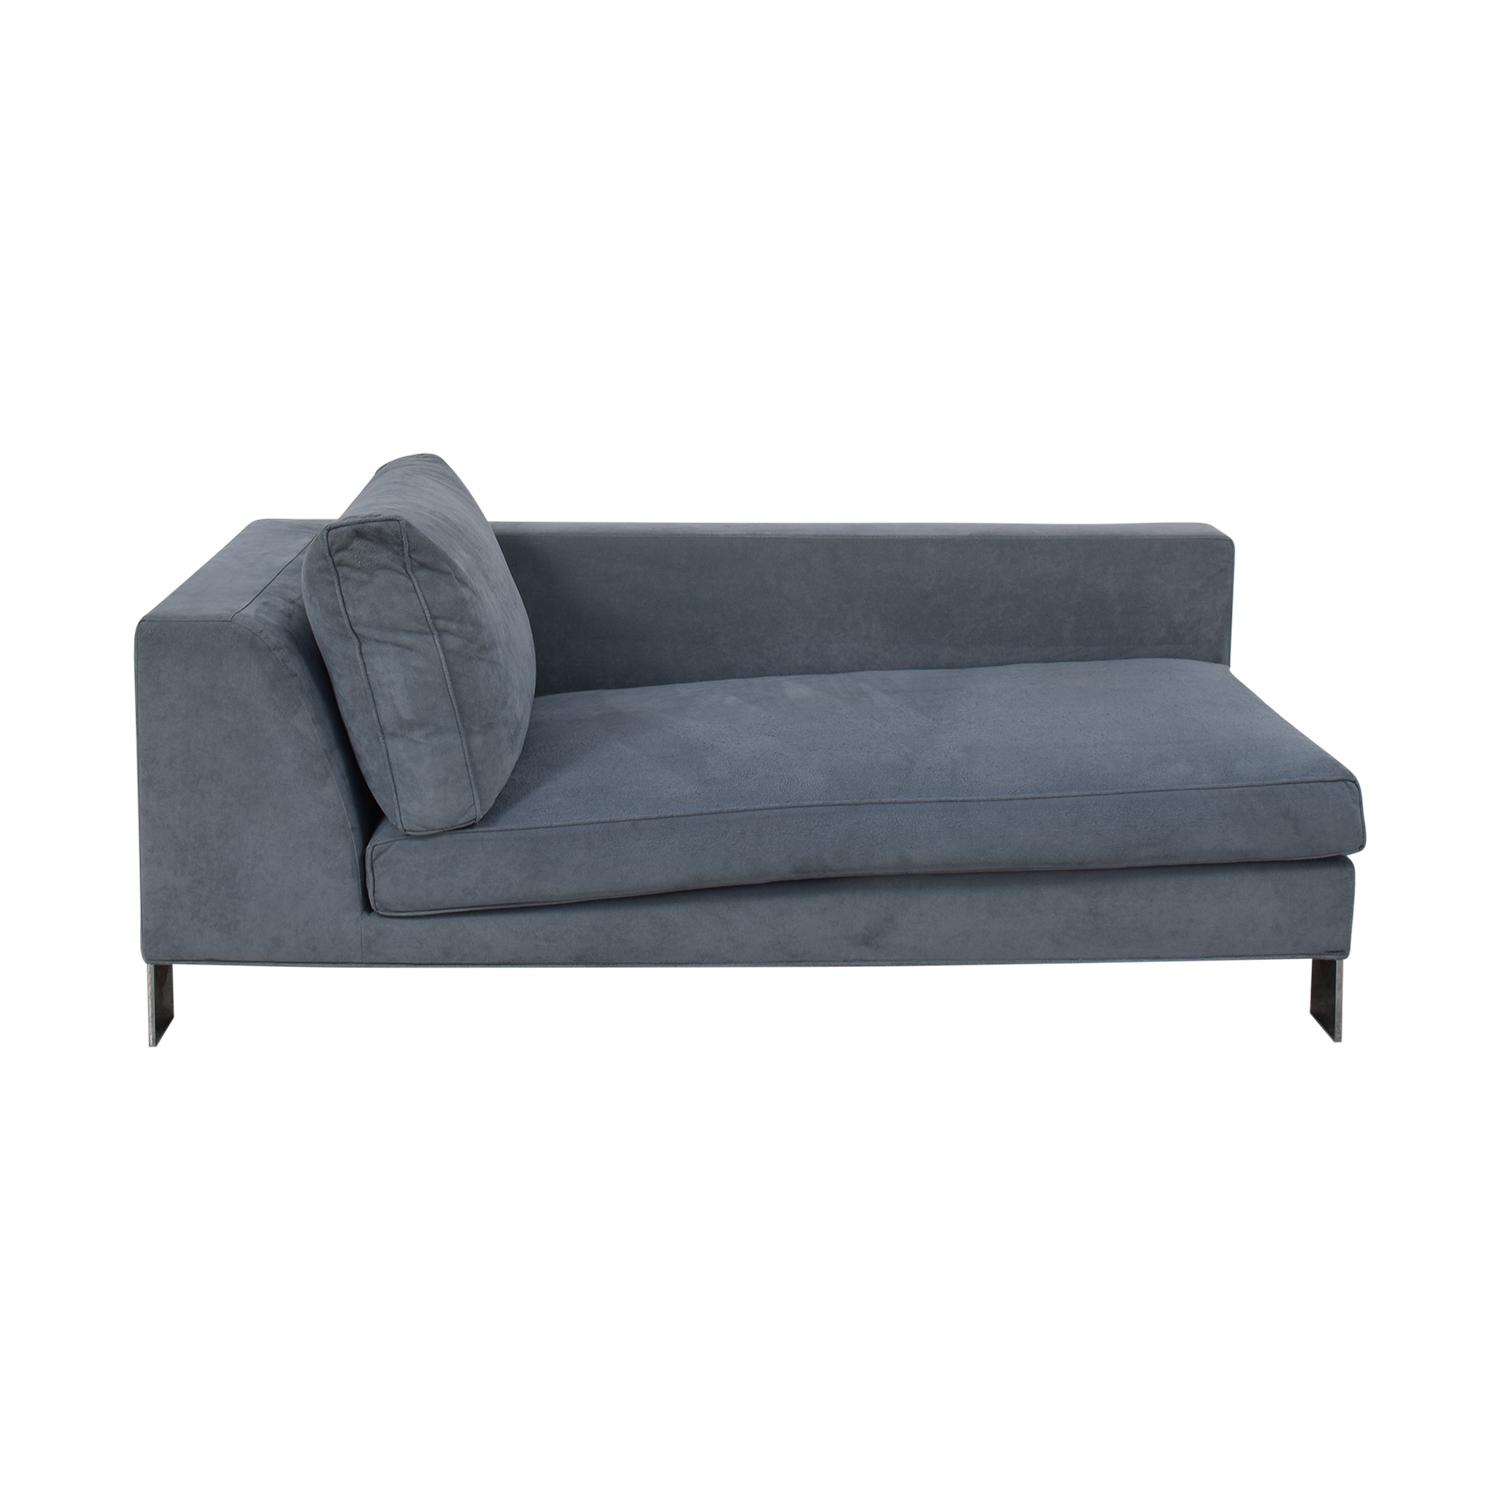 Minotti Minotti Light Blue Ultrasuede Chaise second hand